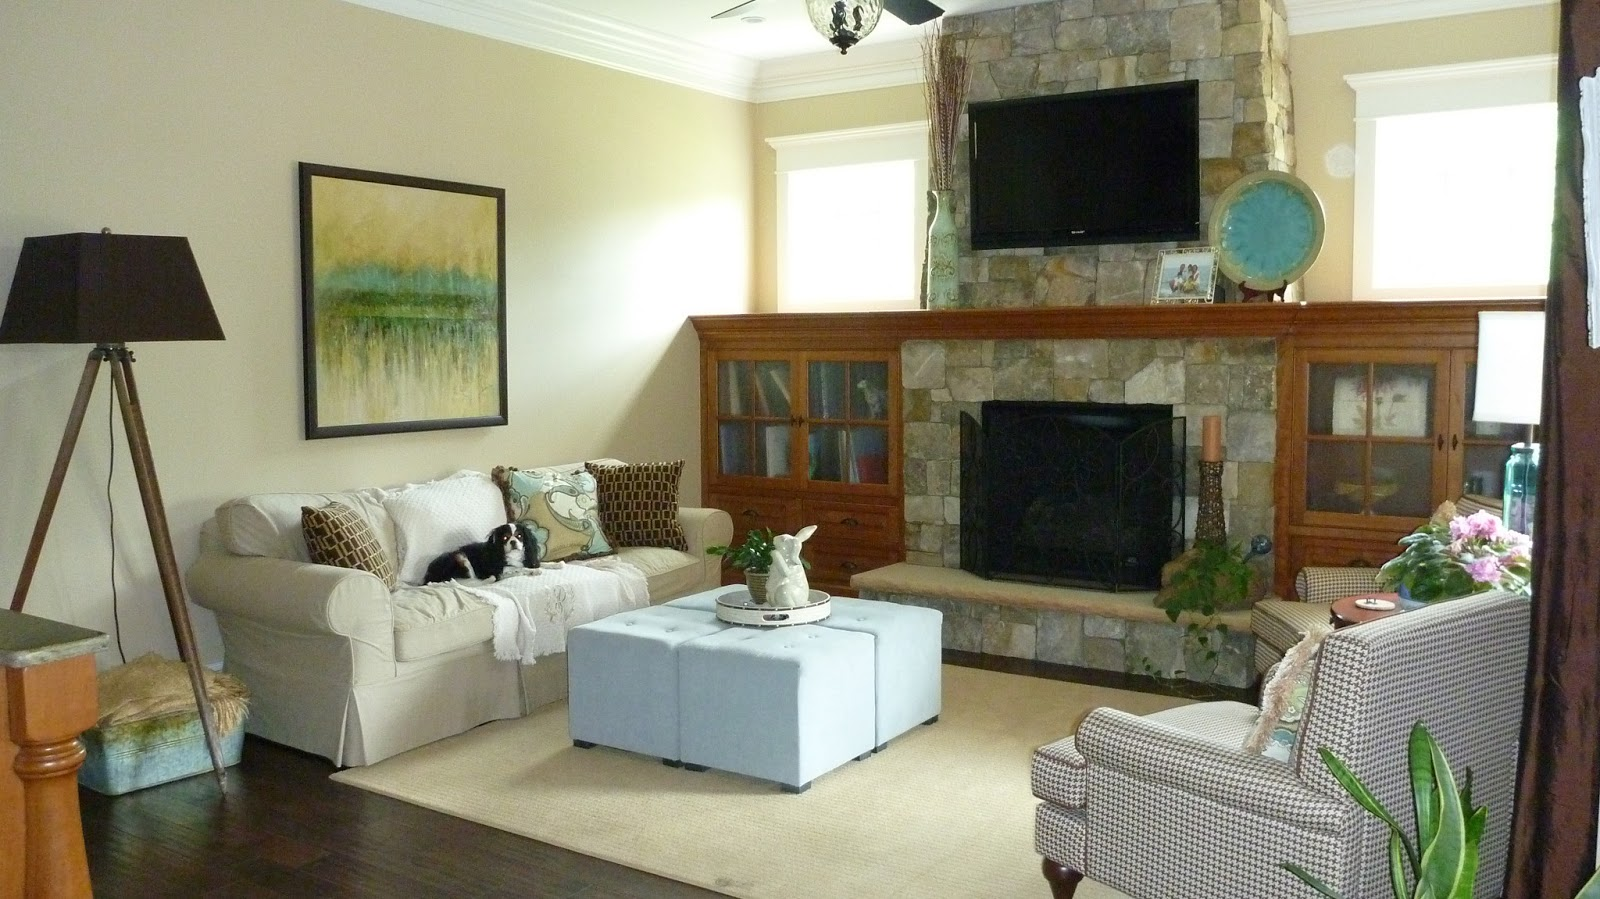 How To Arrange Living Room With Tv Above Fireplace Wall Paint Designs For Decor You Adore Hanging The Over Be Or Not